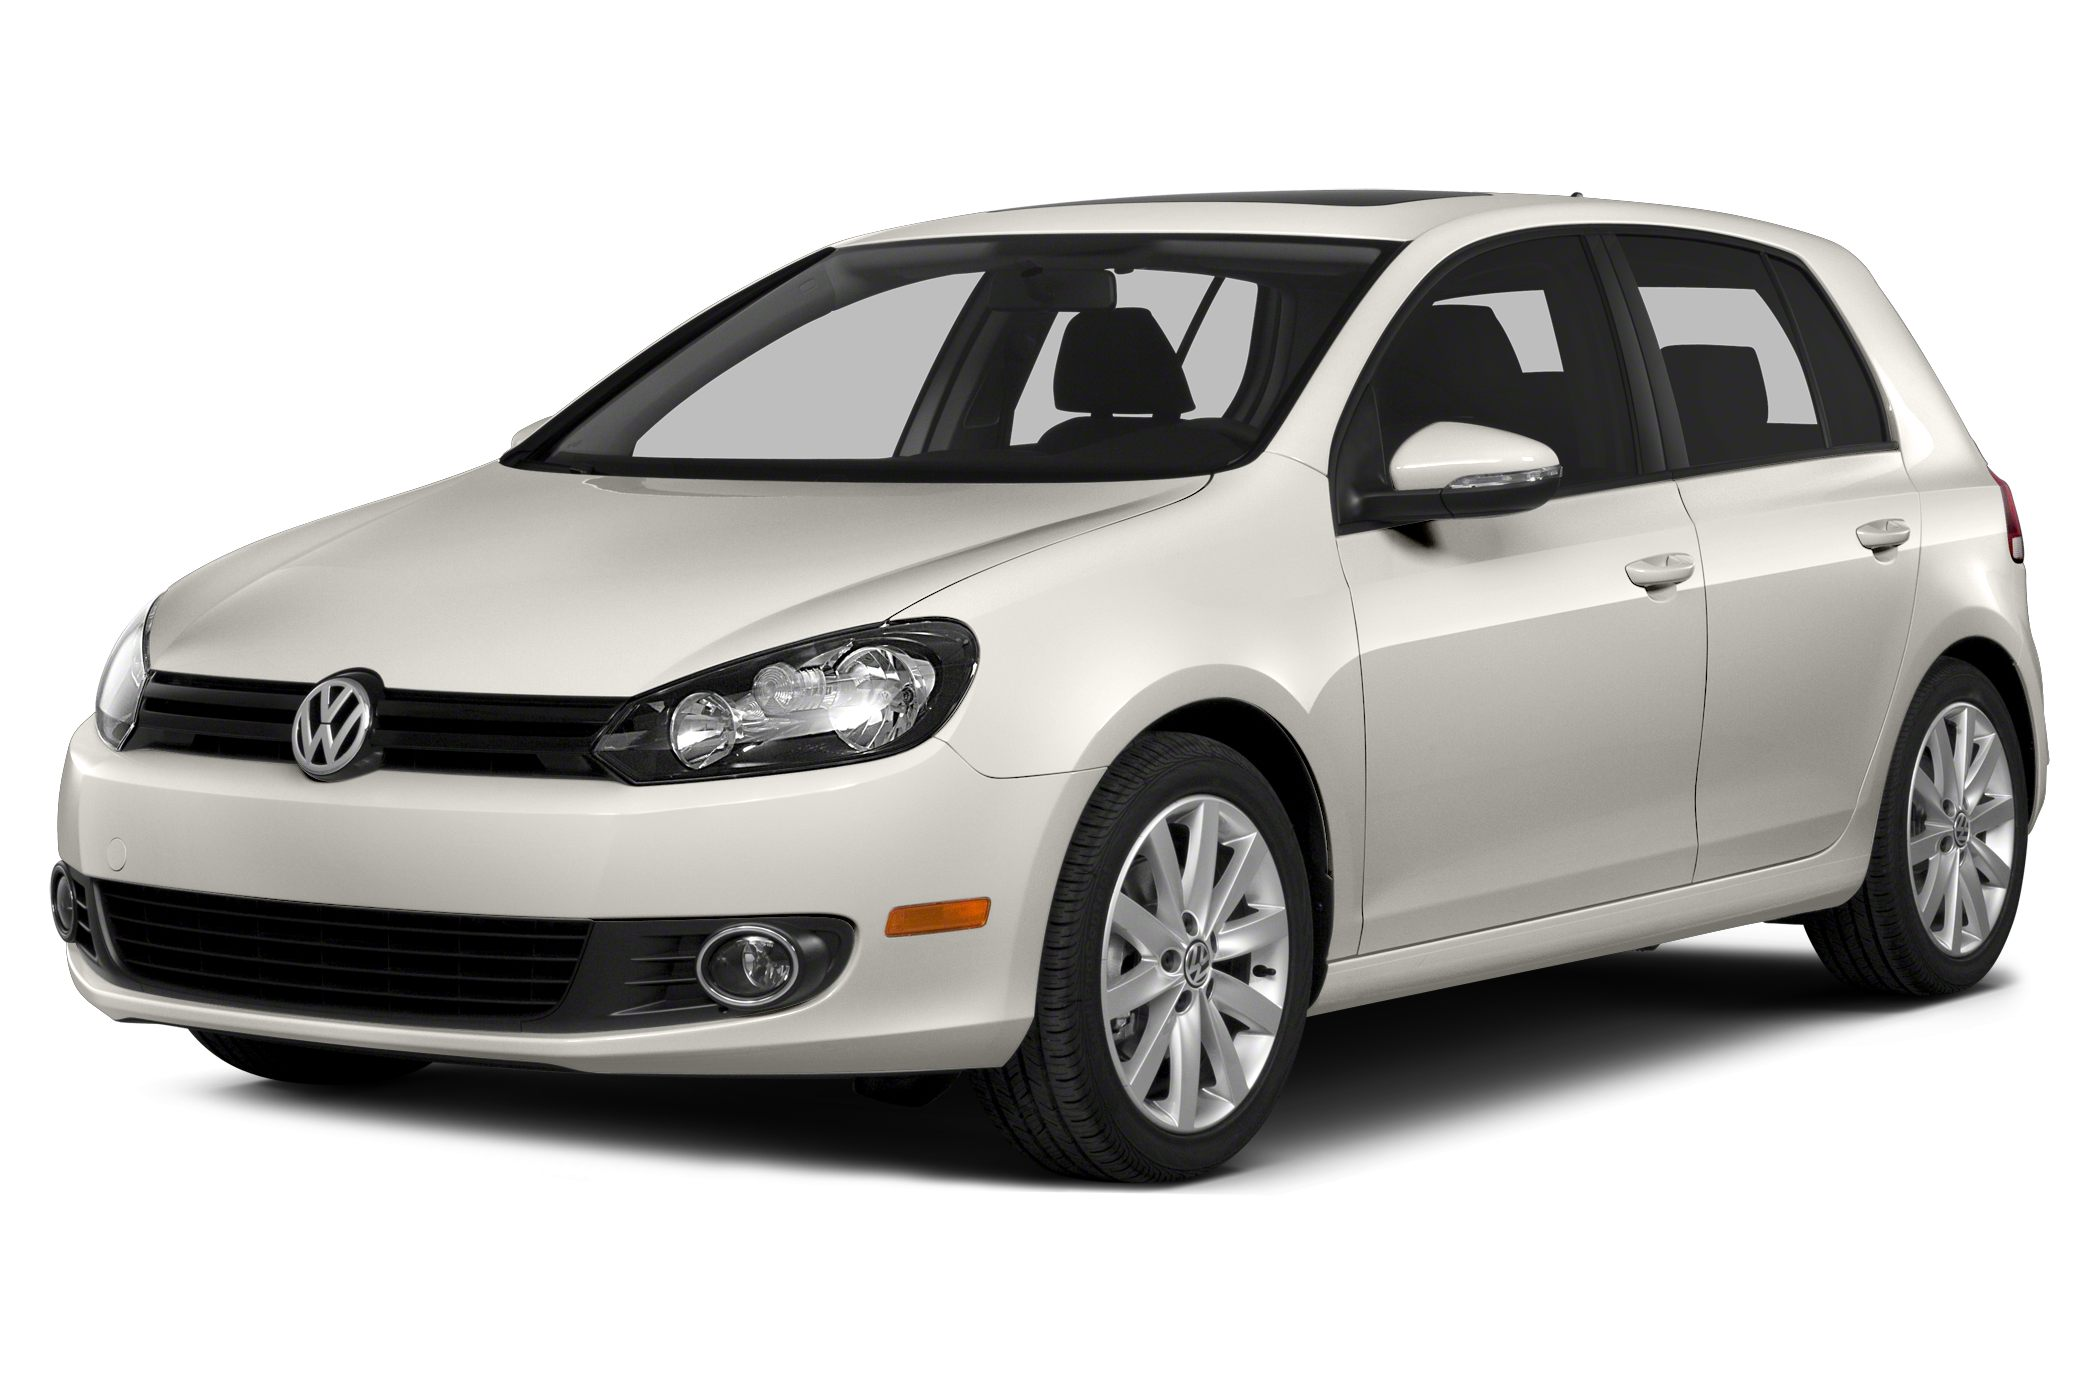 2014 Volkswagen Golf TDI Hatchback for sale in Hawthorne for $24,888 with 29,342 miles